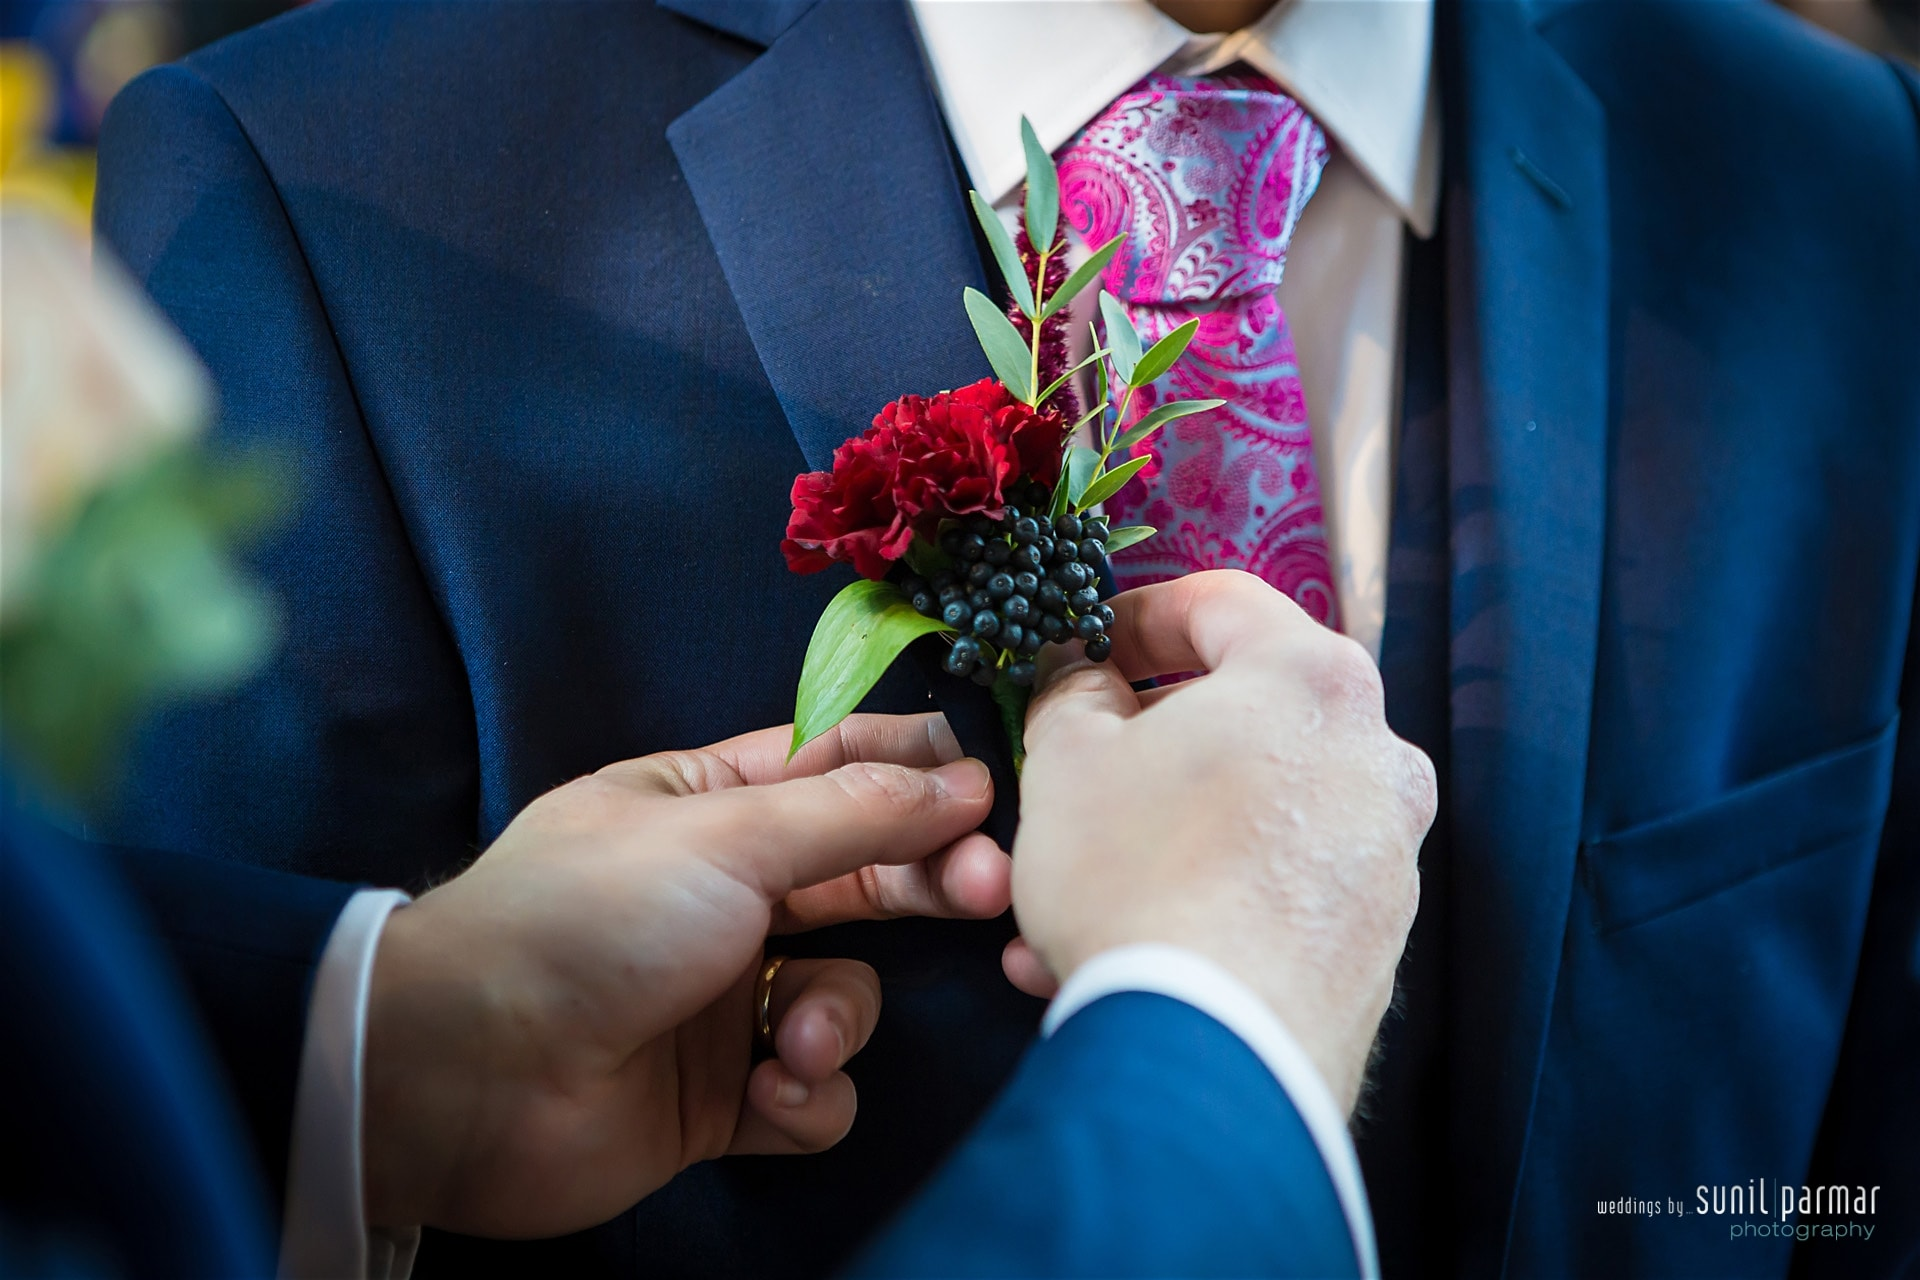 Grooms buttonhole with rose and viburnum berry